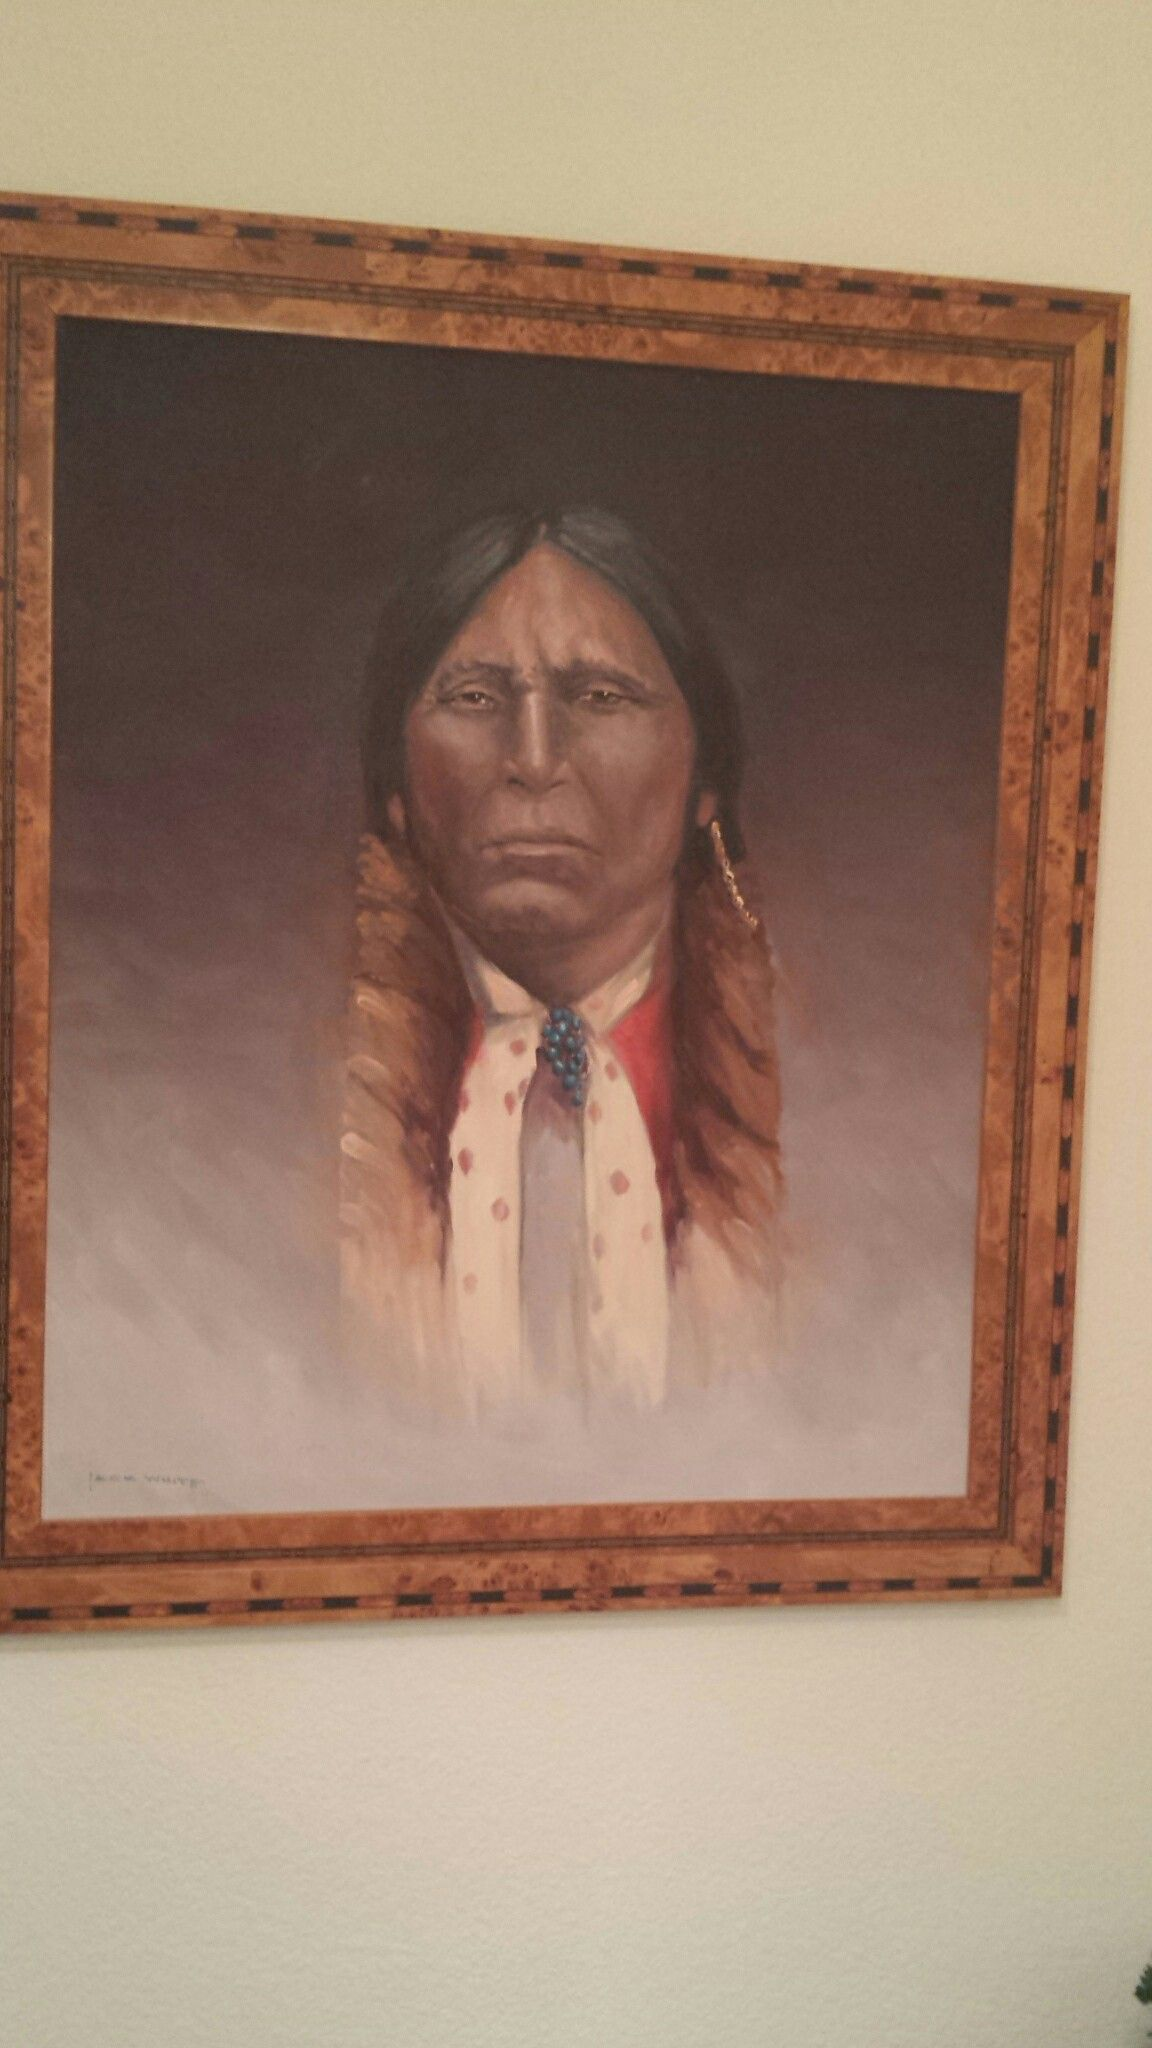 My Quanah Parker picture painted by Jack White.